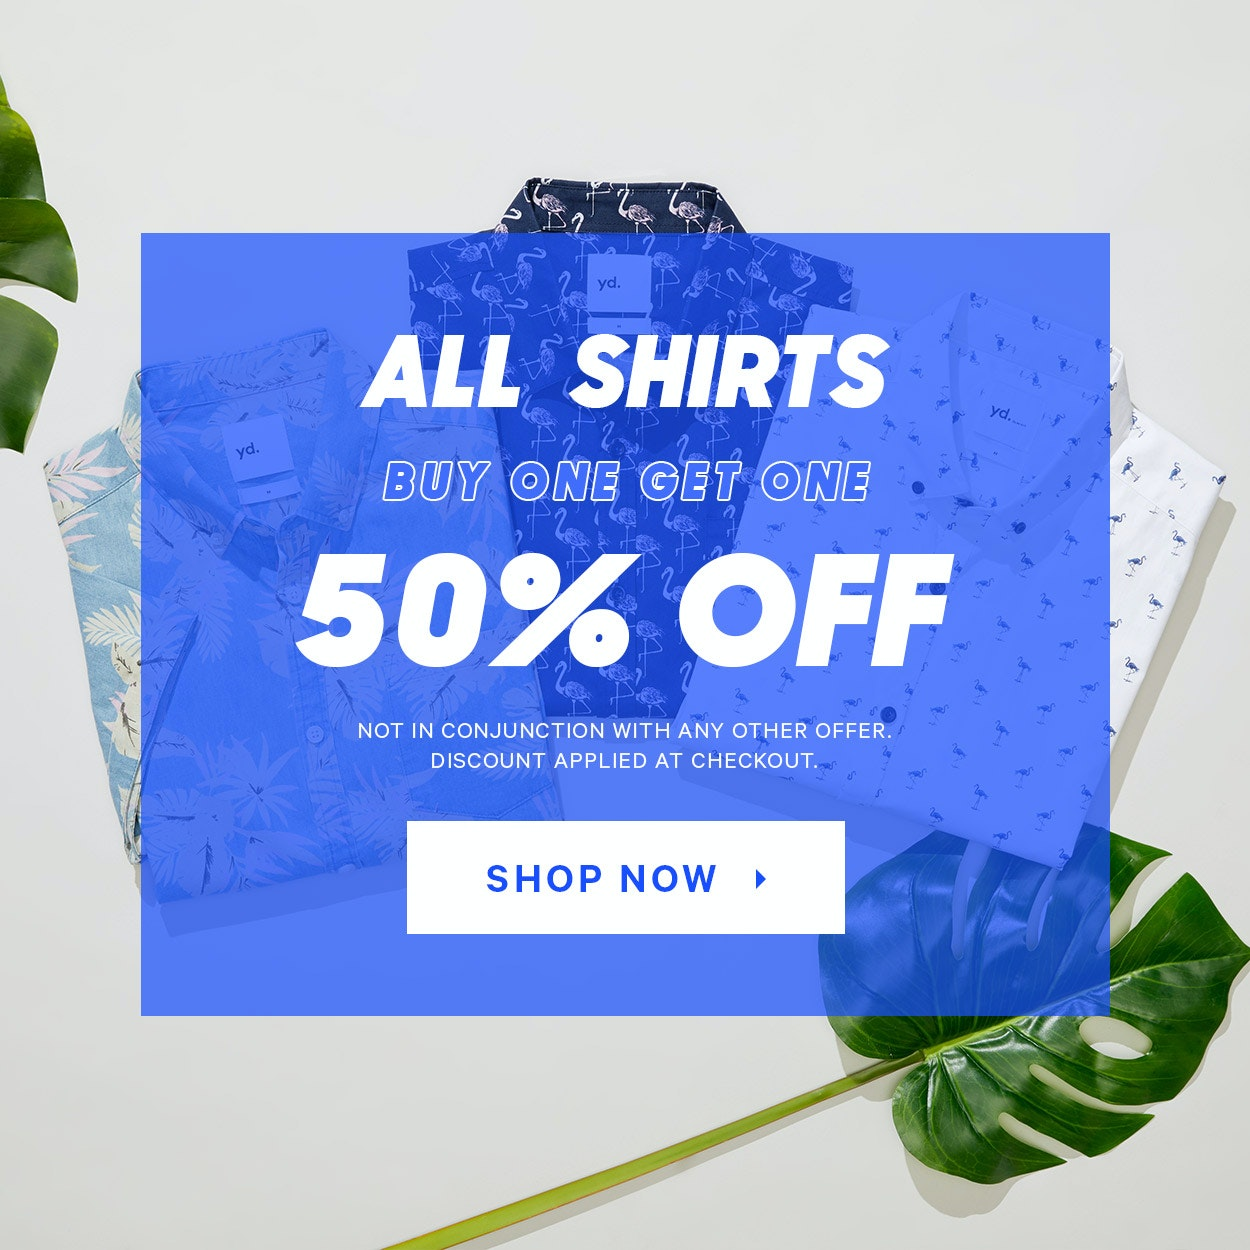 Buy one, get one 50% off shirts